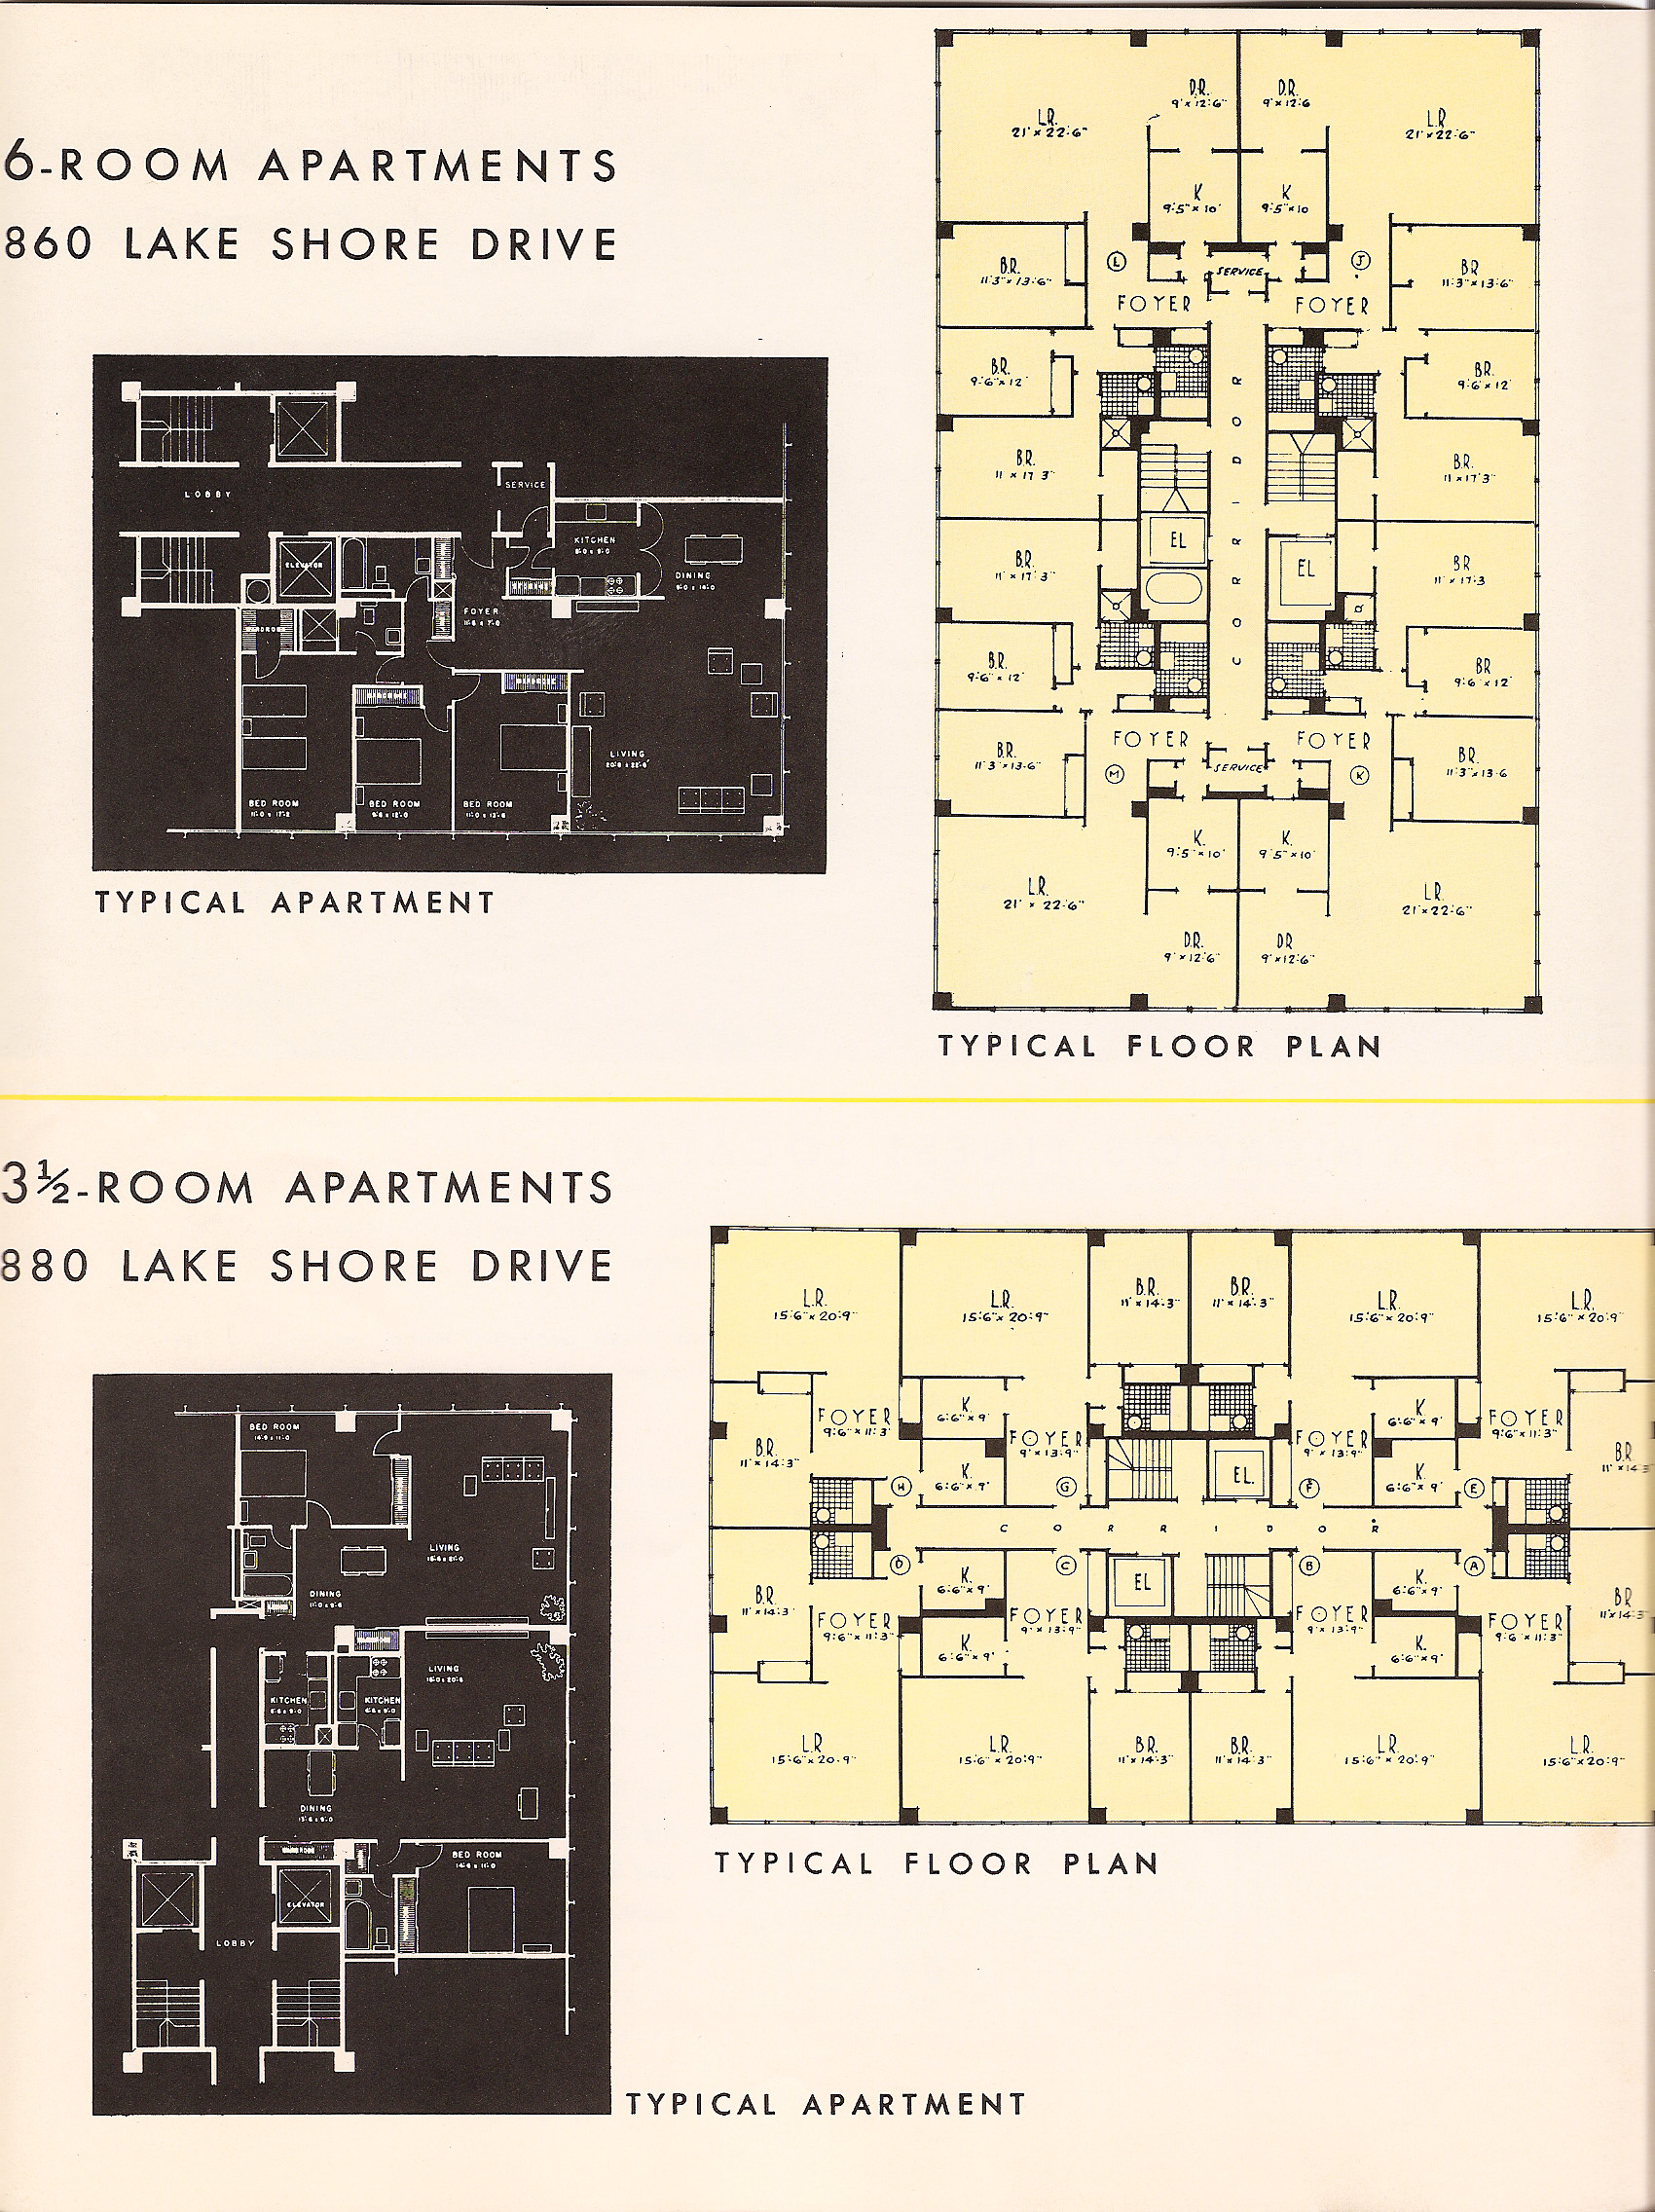 Floor plans from the glass house brochure 2 for 1400 n lake shore drive floor plans